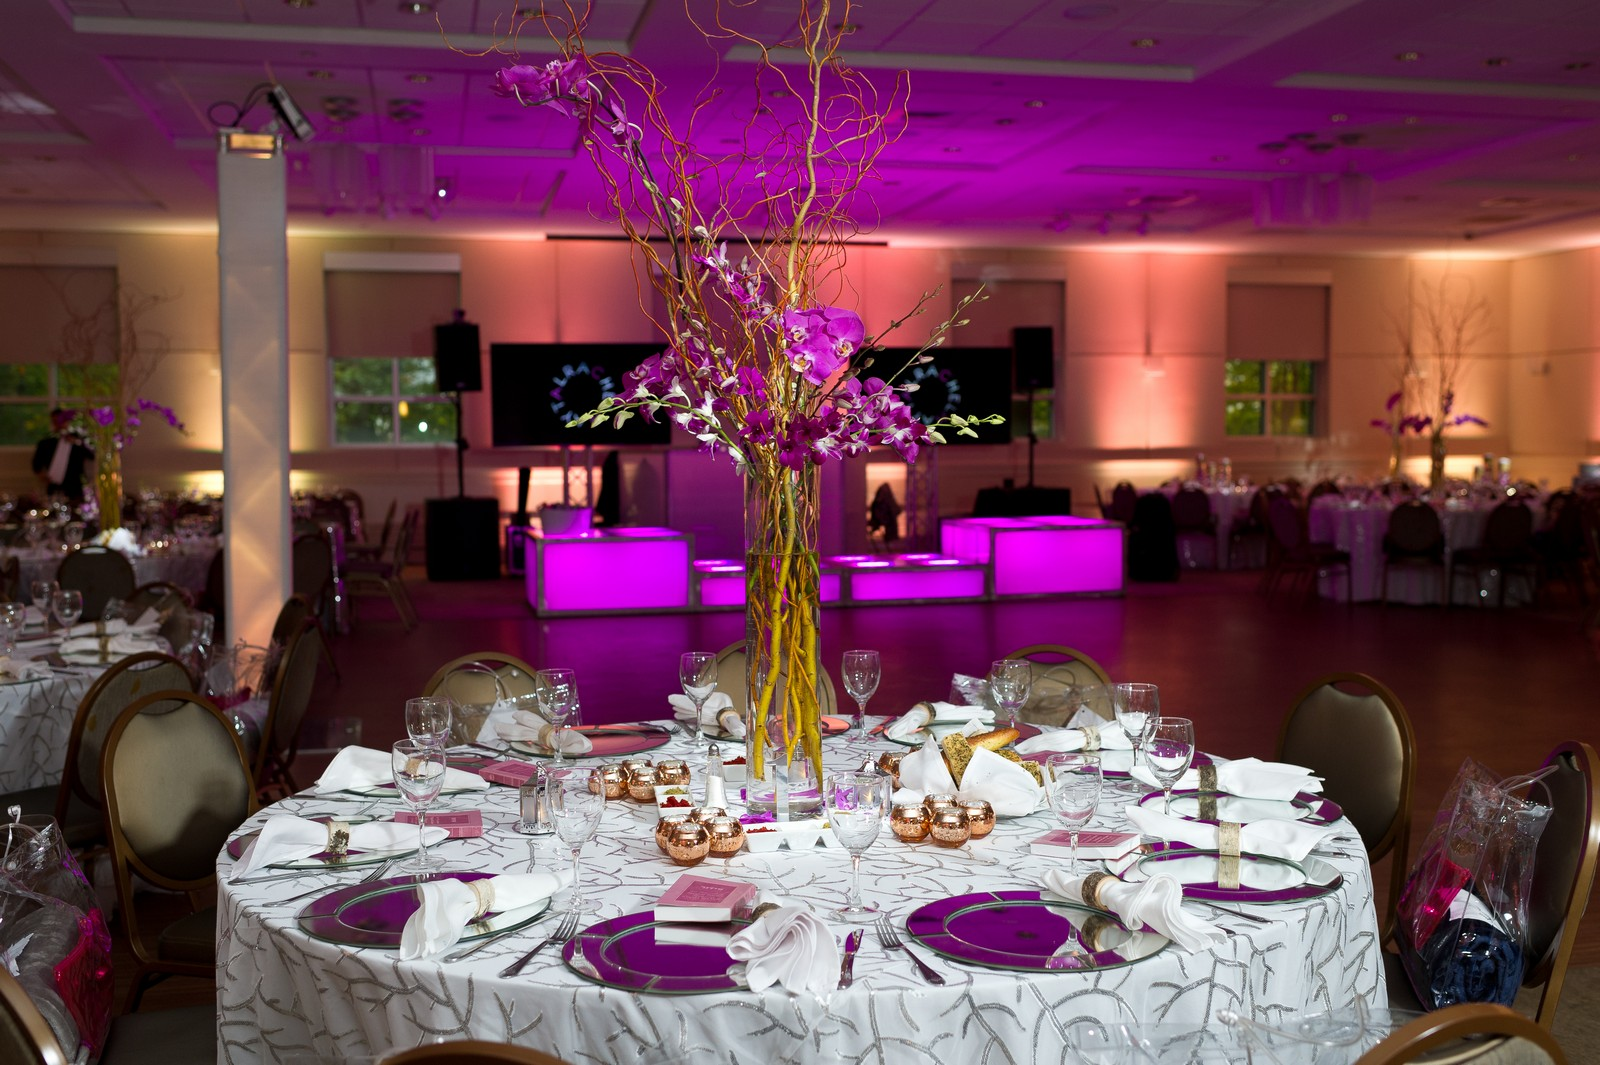 Maytal's Bat Mitzvah in New Rochelle, NY, Photos by Chaim Schvarcz Elegant Classy New Rochelle